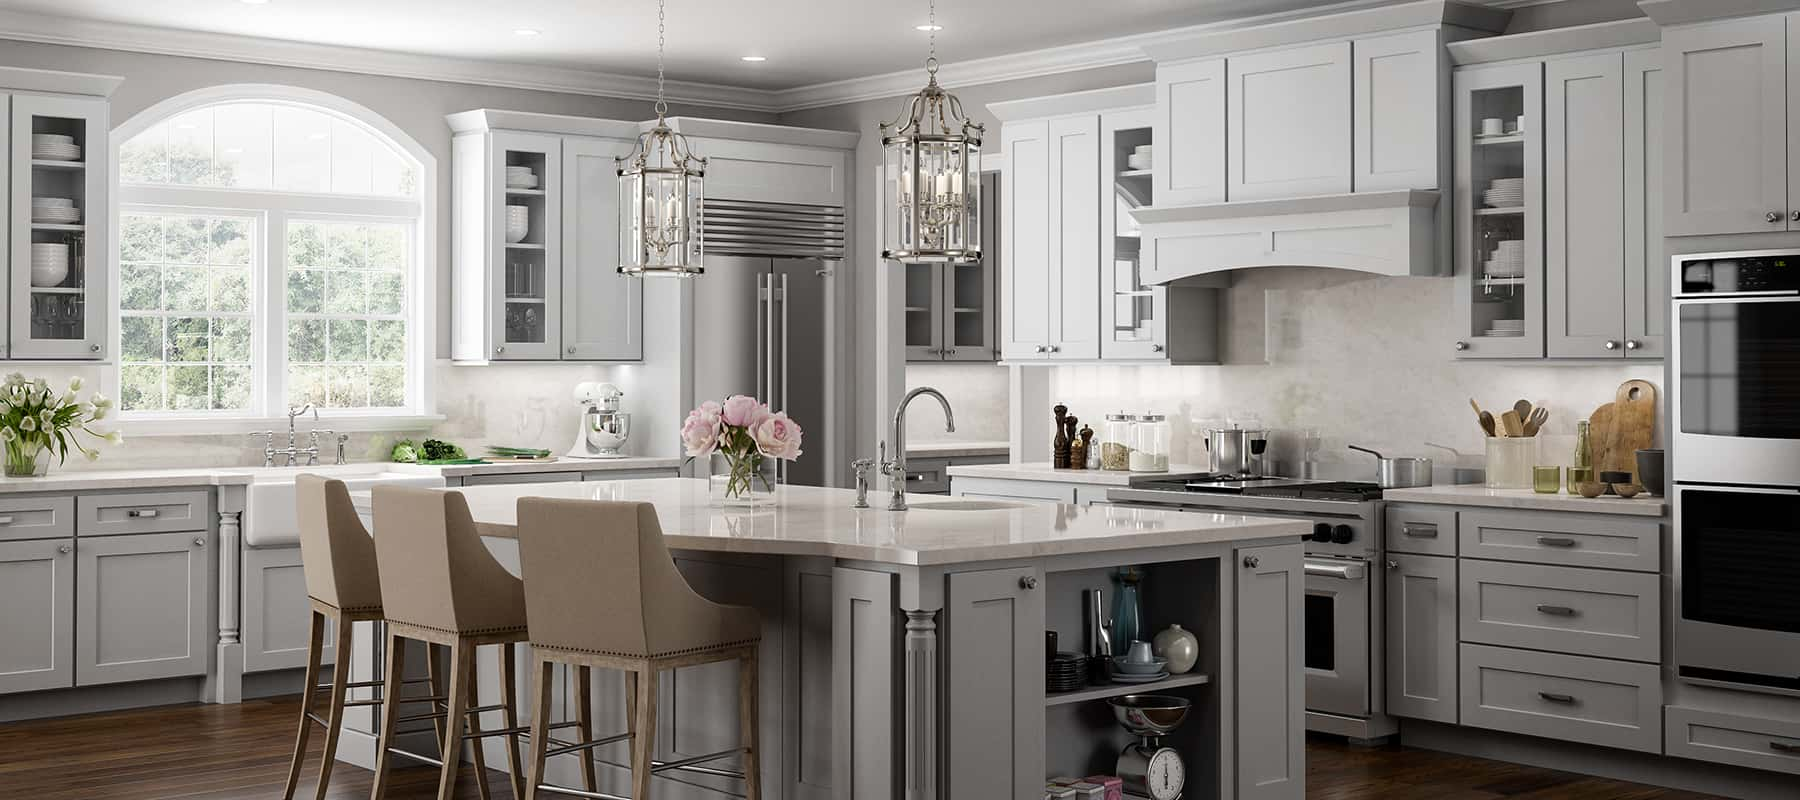 Ordinaire Kitchen Cabinets